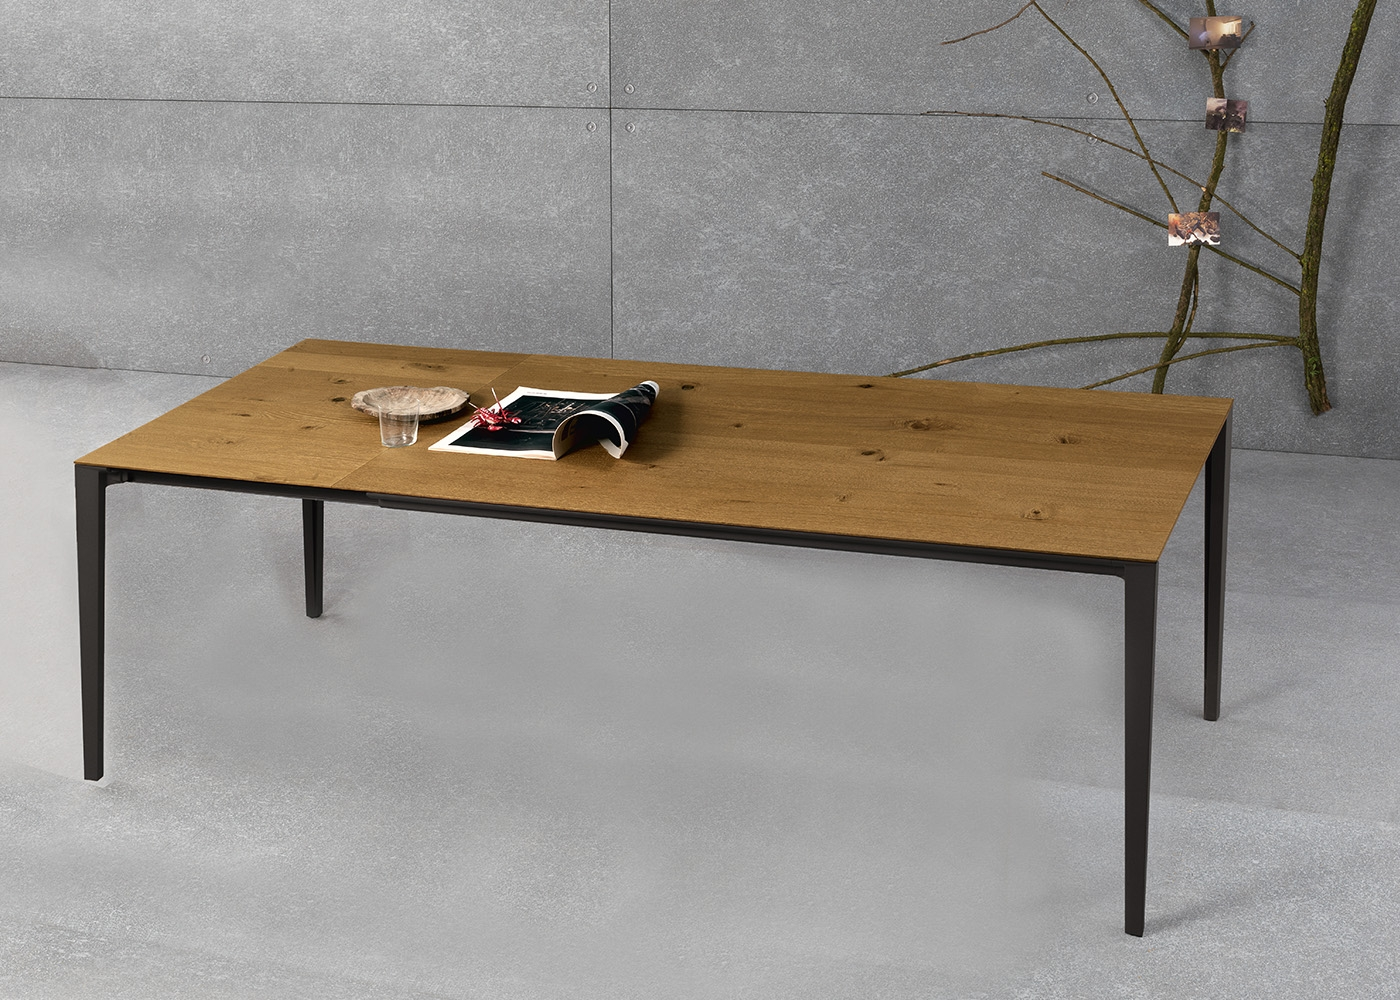 Table de repas en ch ne ou noyer au design sobre et for Table salle a manger solde